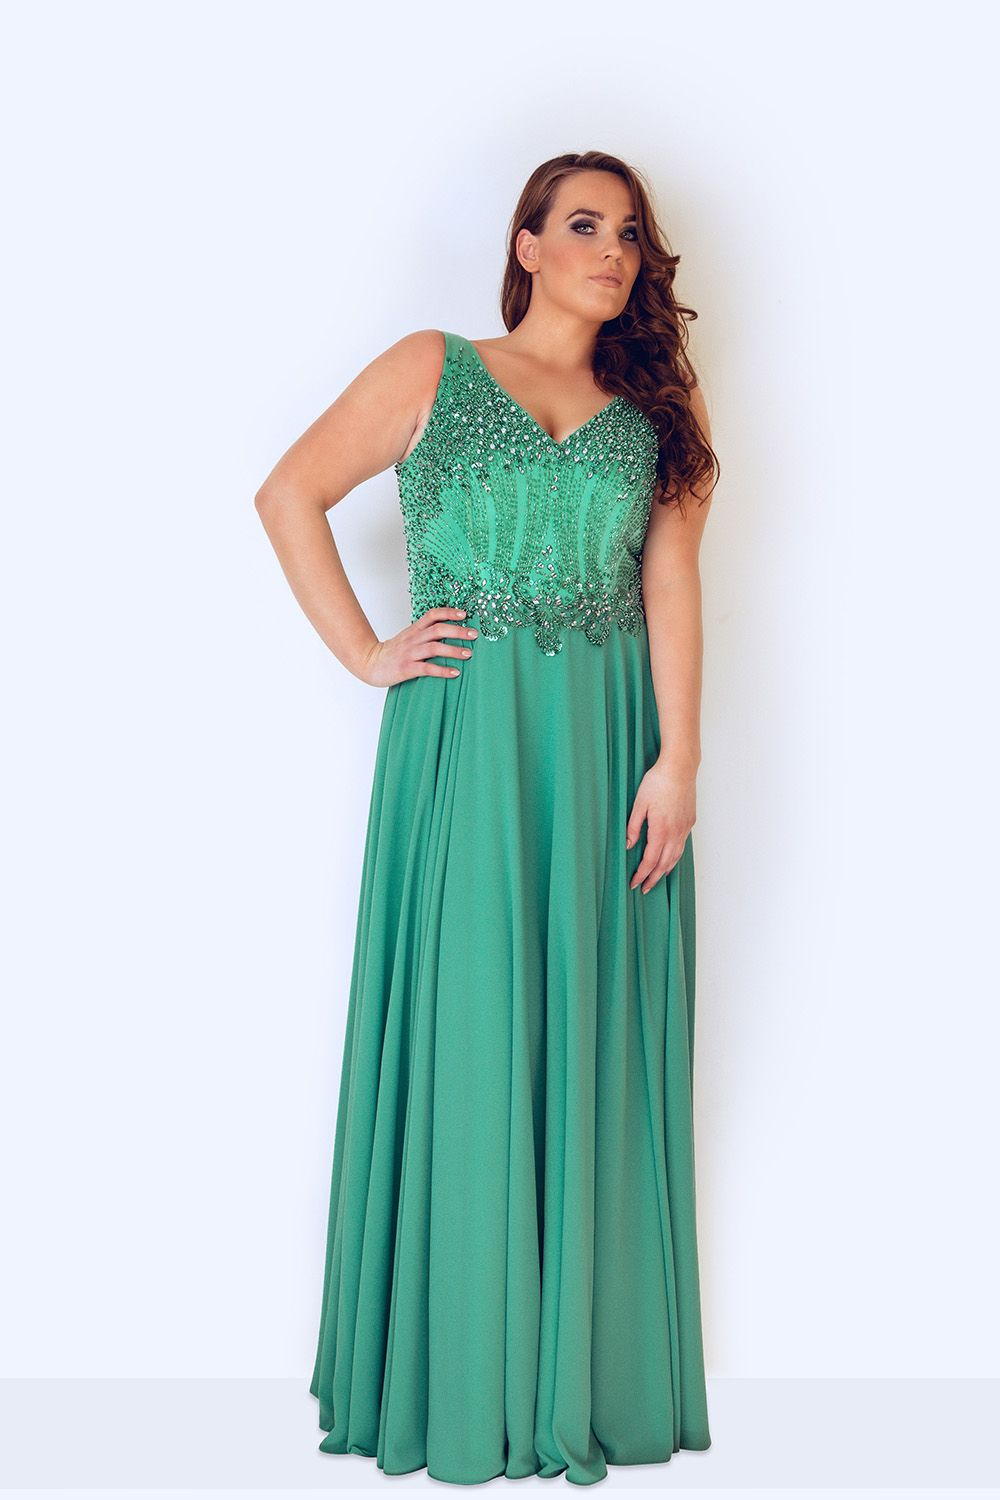 ebccffef6c2 Green sleeveless plus size evening gown, evening dress, plus size ...